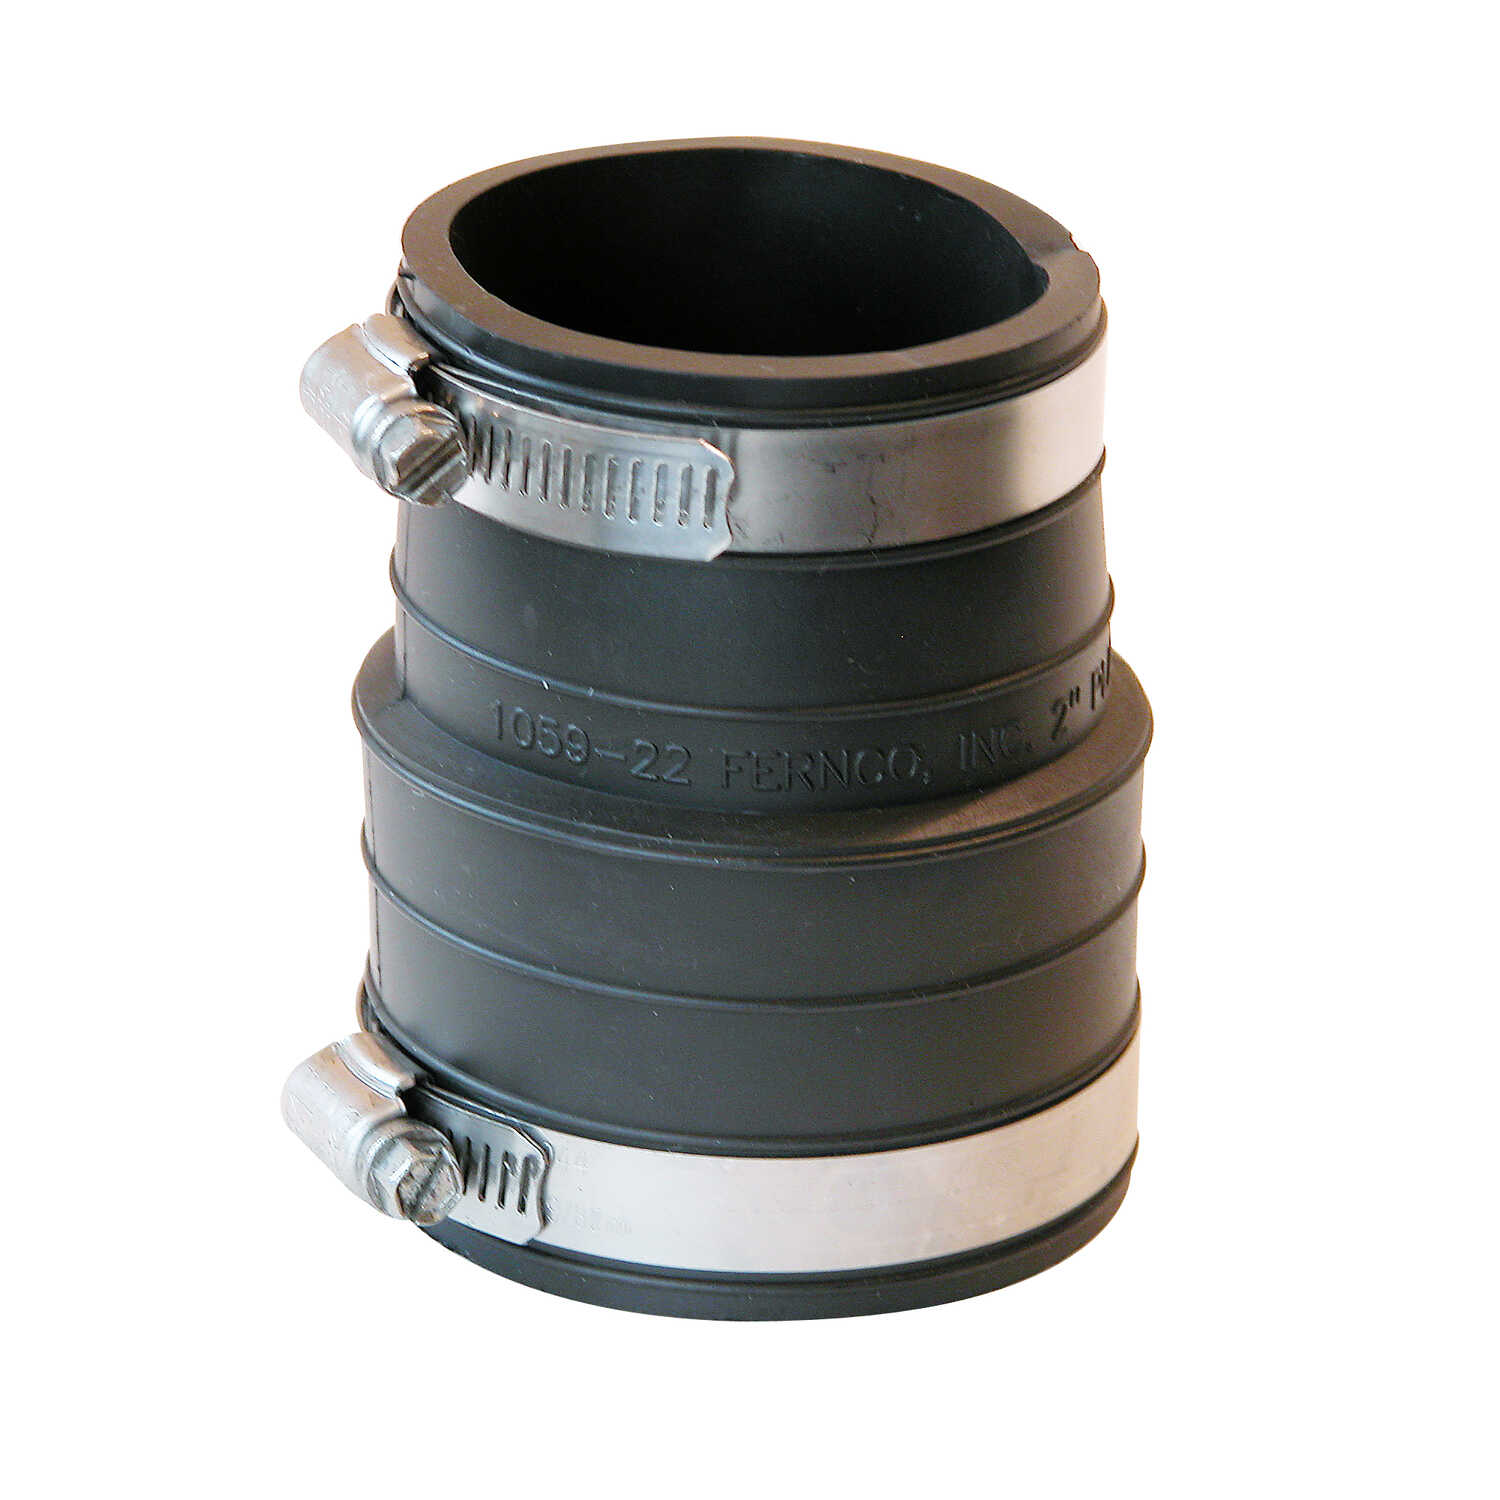 Fernco  Schedule 40  2 in. Hub   x 2 in. Dia. Socket  Flexible PVC  For DWV, sewer and drain Flexibl